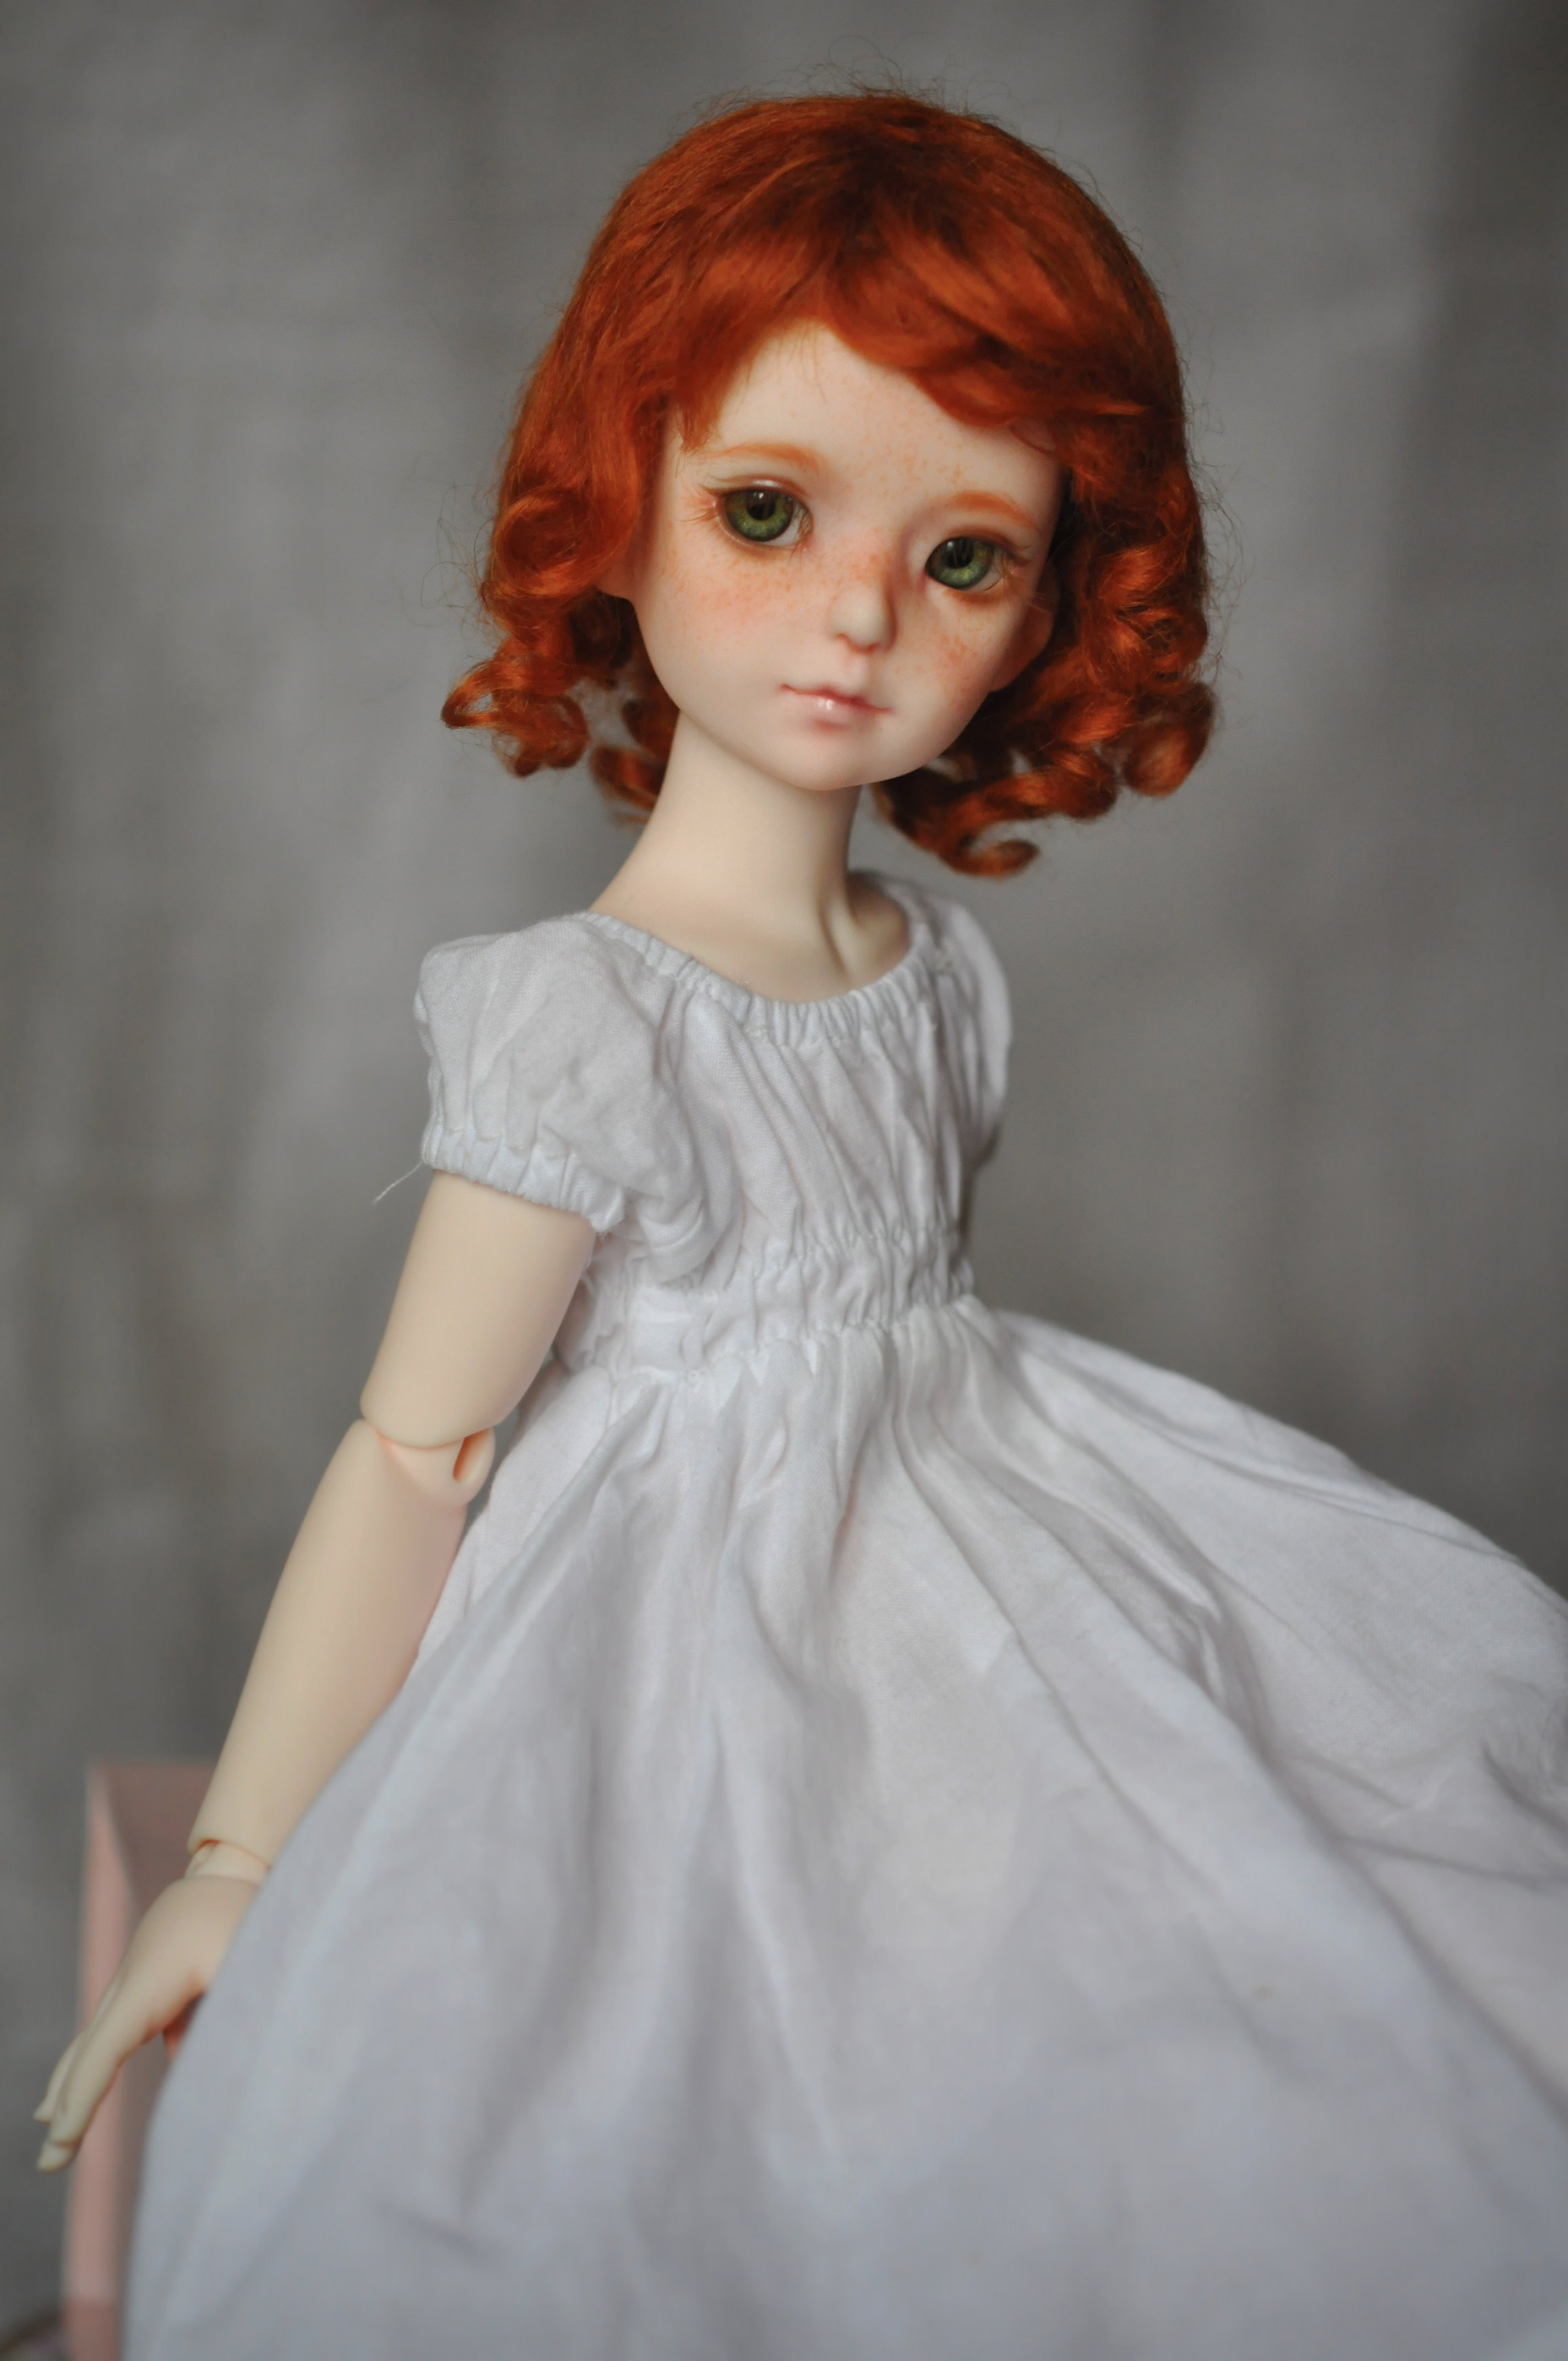 Toys Doll Baby Short Hair Girl Beautiful Red Hair Dress